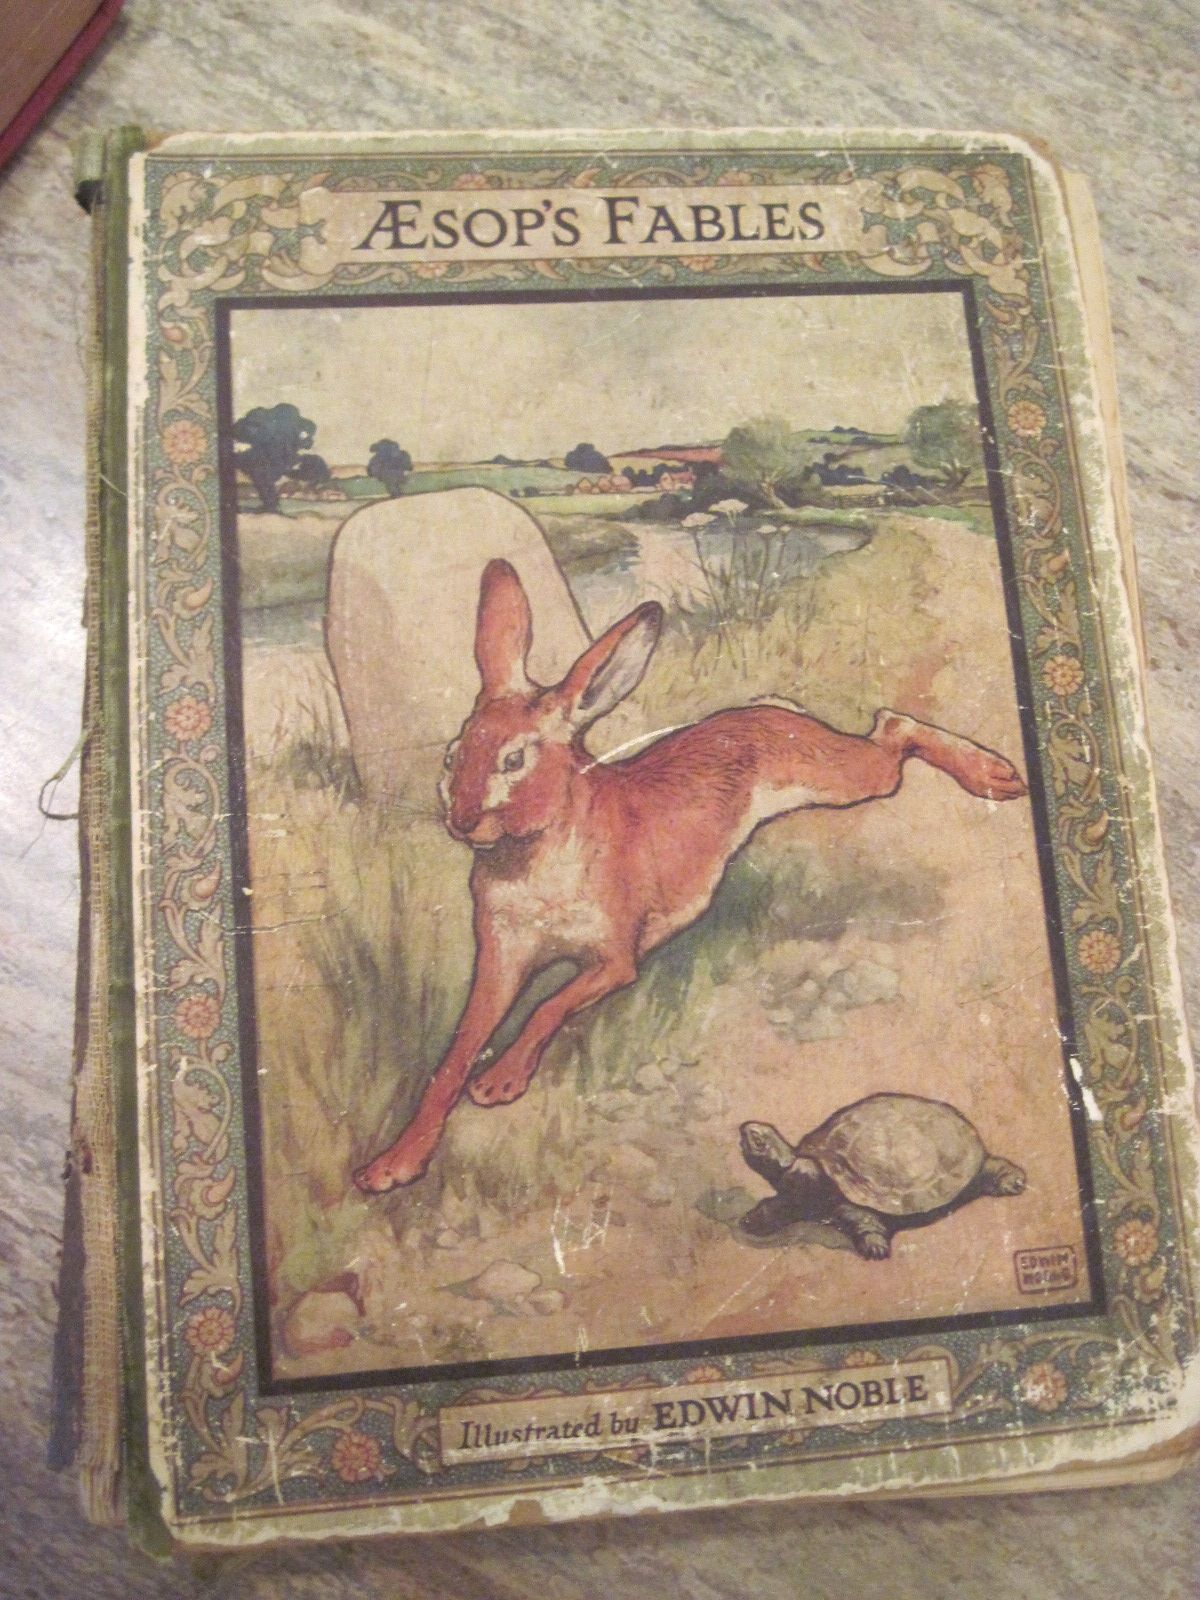 Aesops Fables A Classic Alesson Learned Or A Good Story